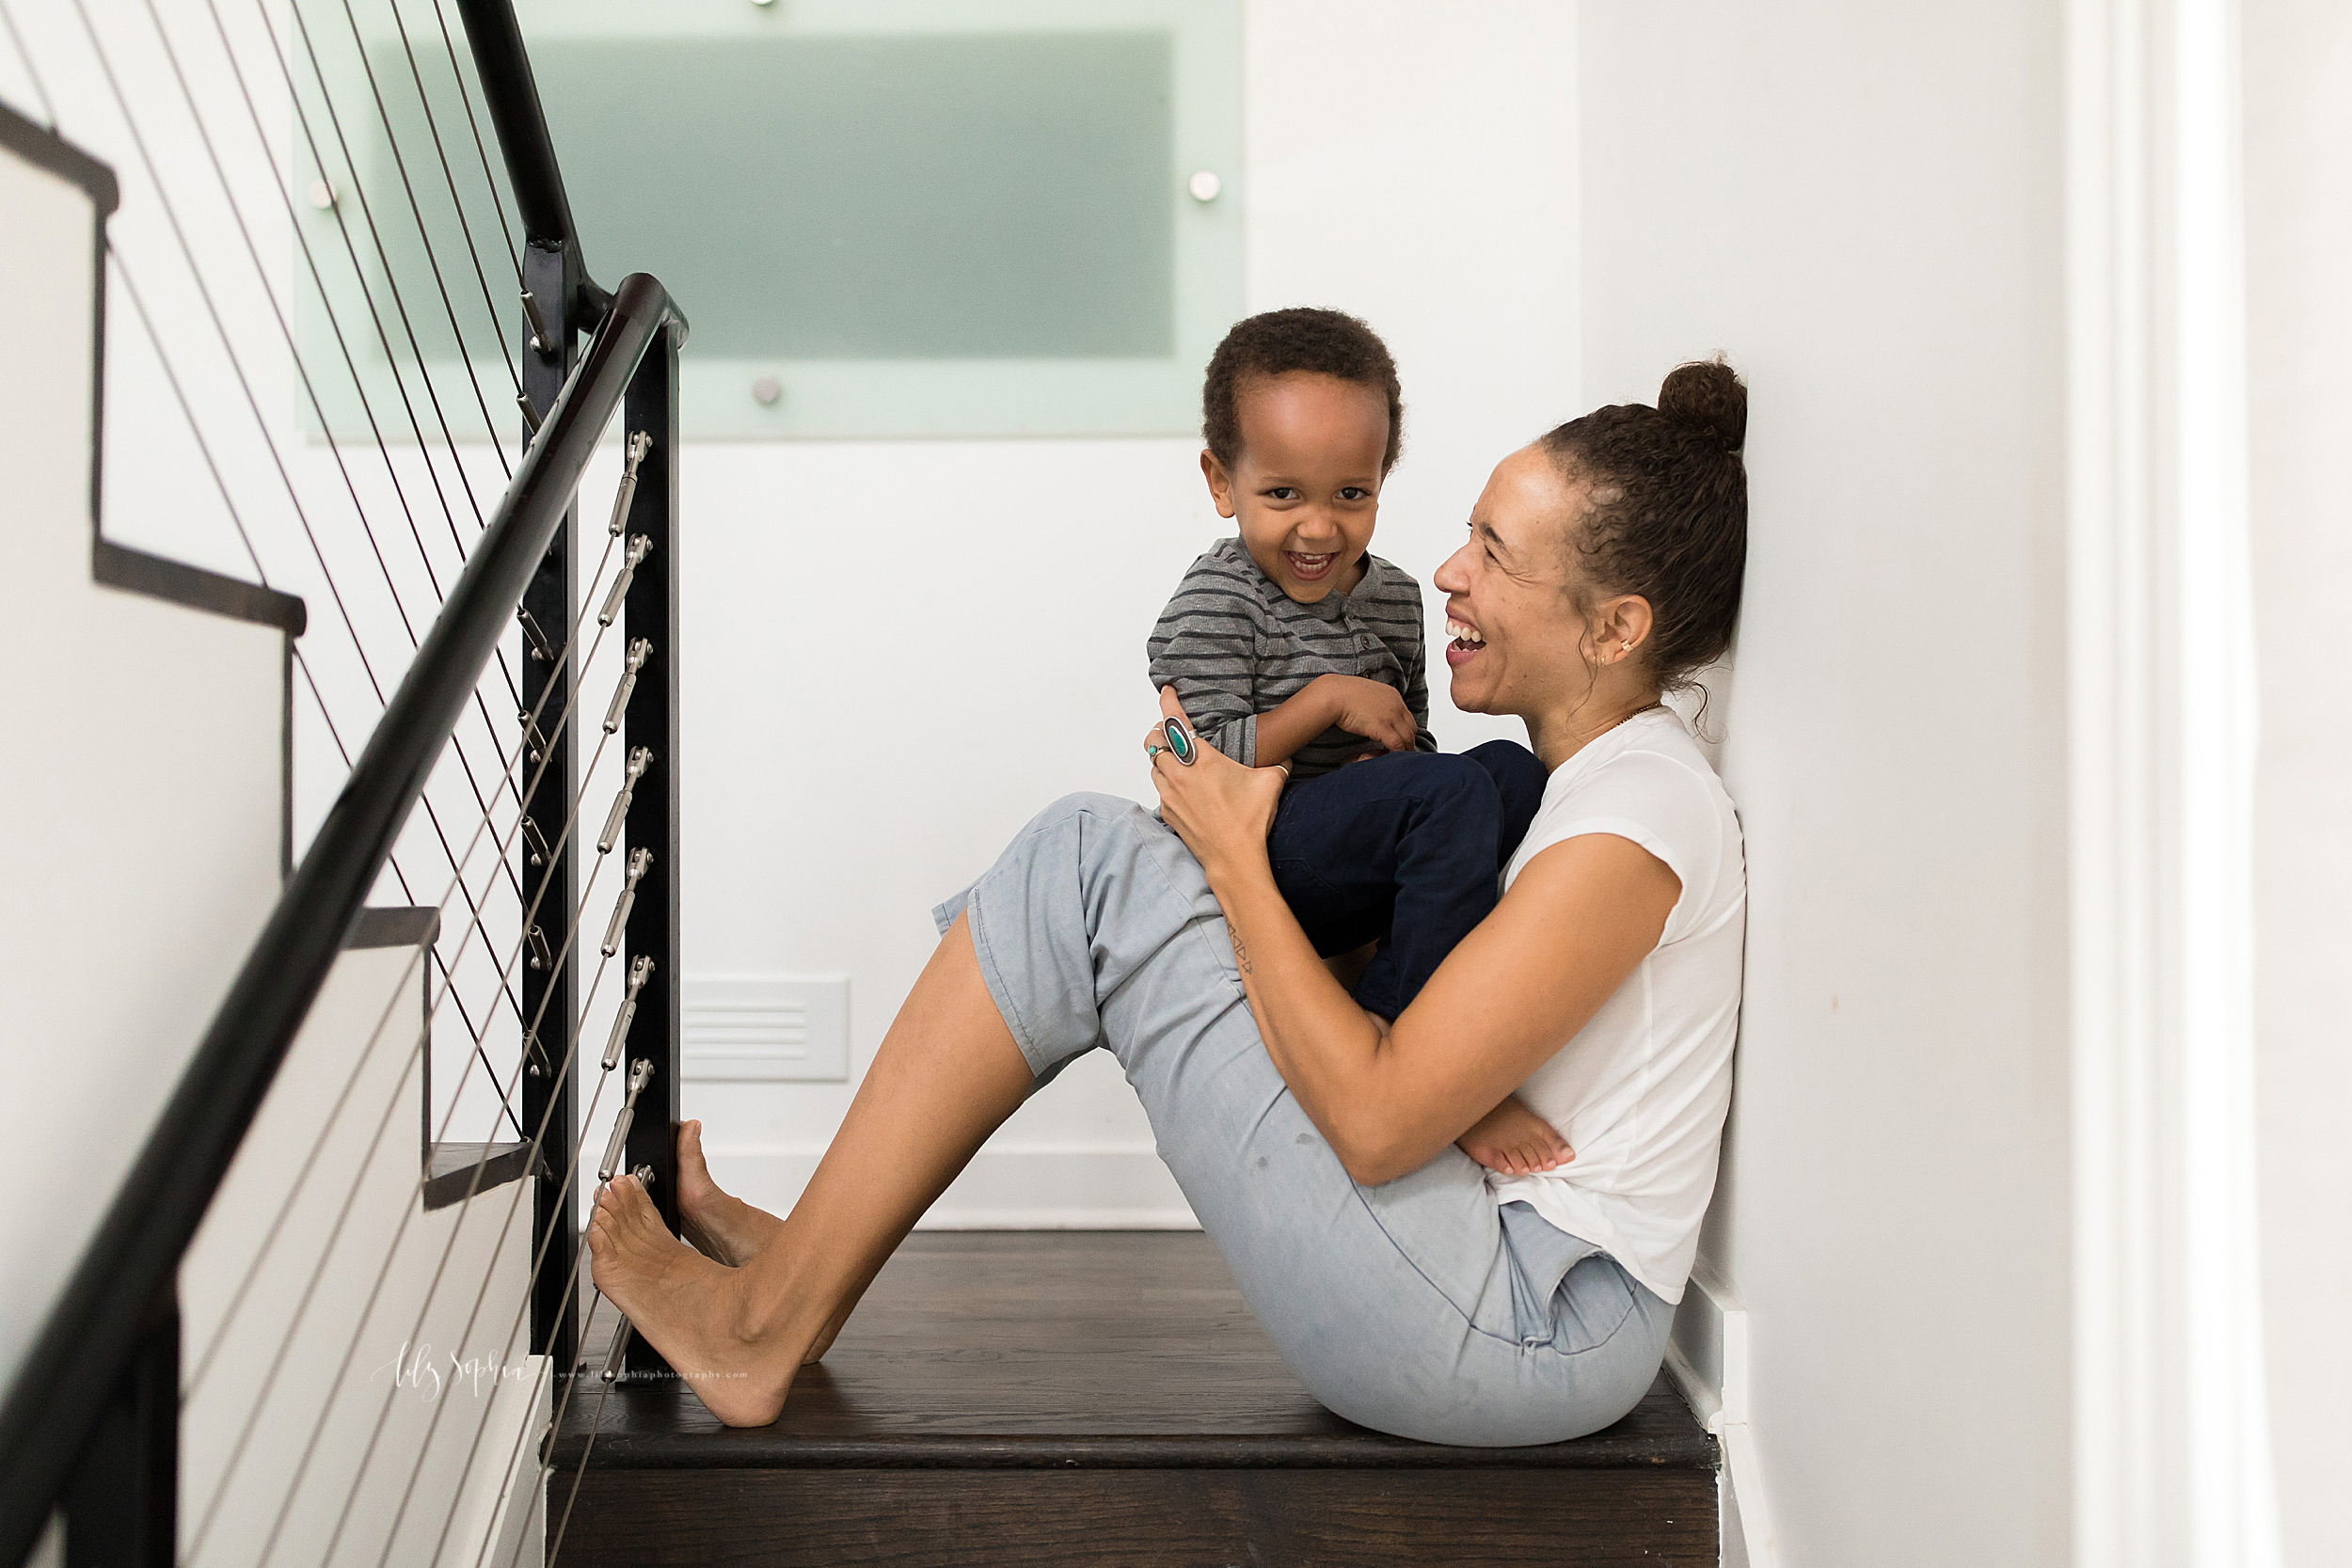 atlanta-midtown-inman-grant-park-beltline-old-fourth-ward-lily-sophia-photography-in-home-lifestyle-mommy-and-me-session-family-photographer-toddler-boy_0440.jpg